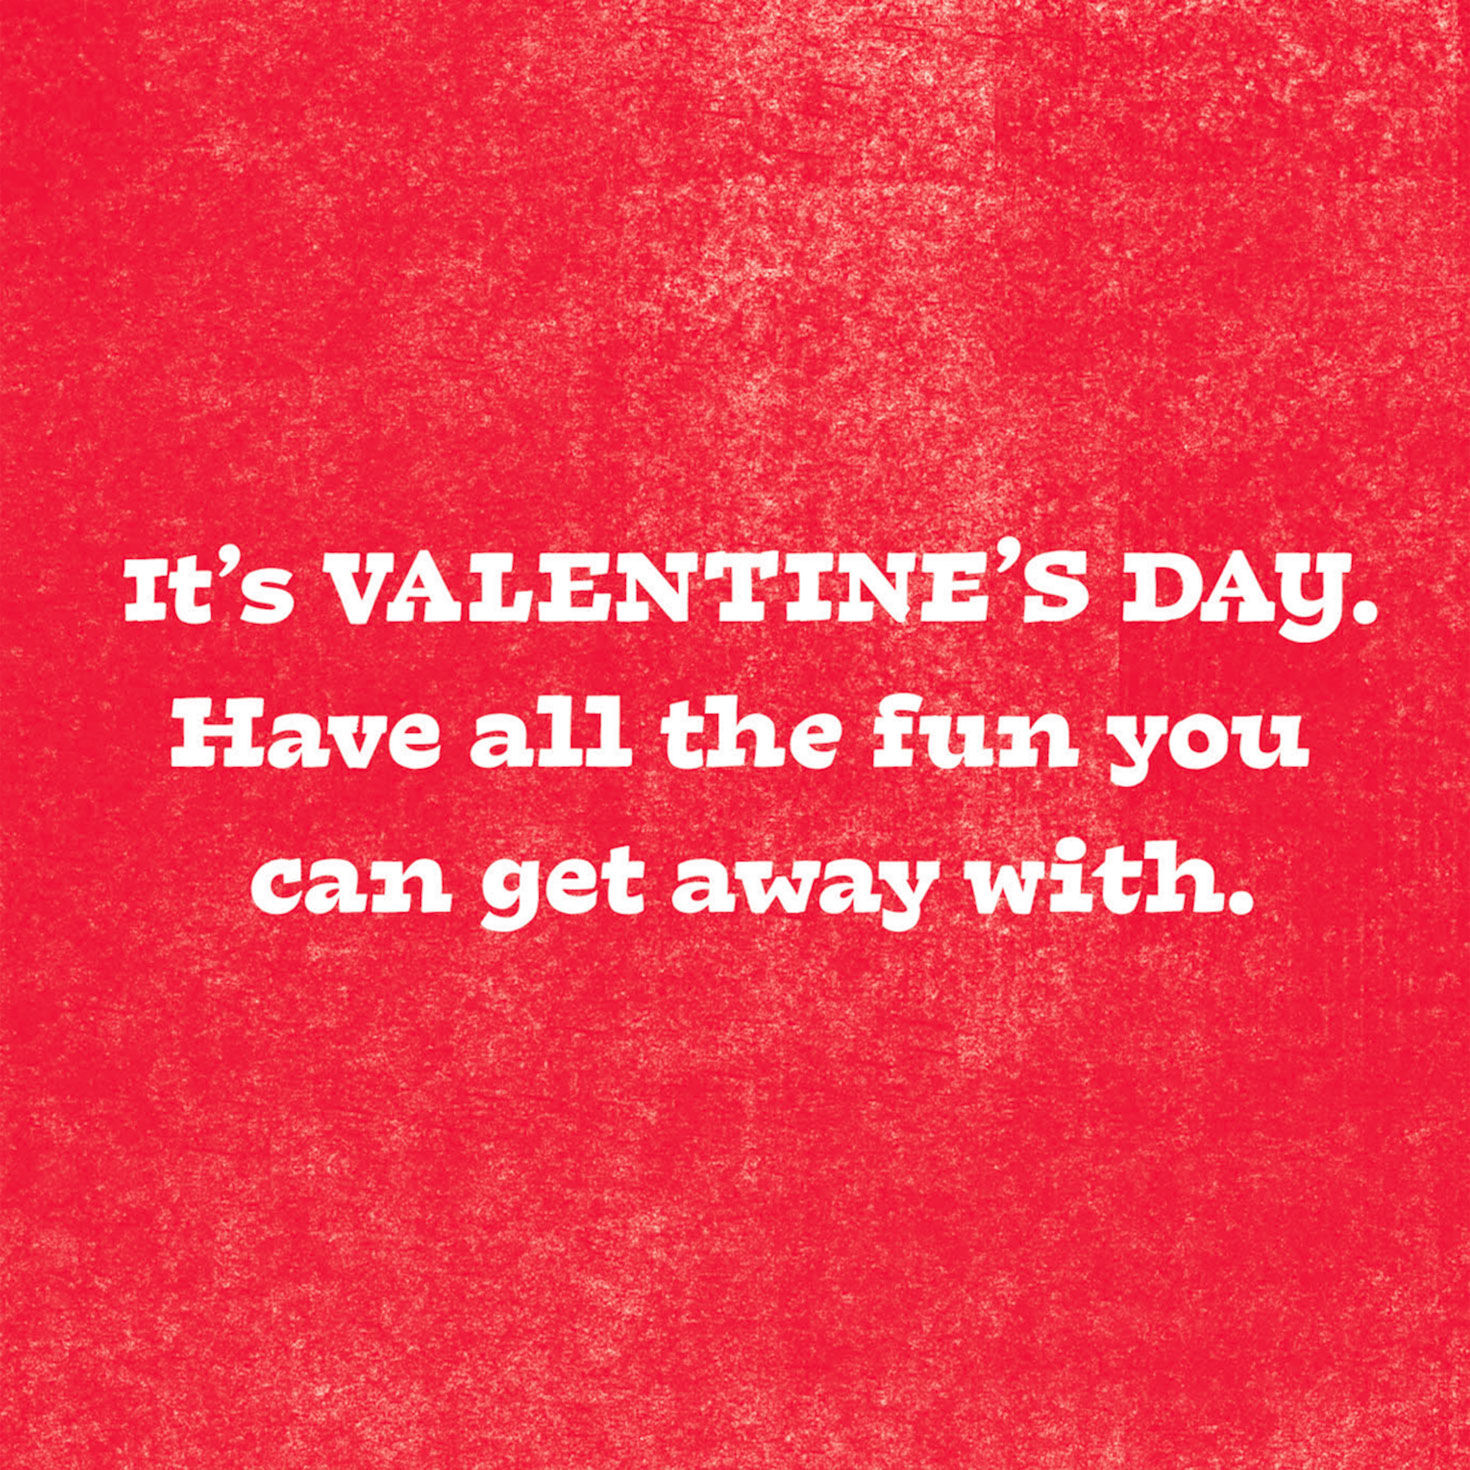 photograph relating to Funny Printable Valentines Day Cards referred to as Valentines Working day Playing cards Hallmark